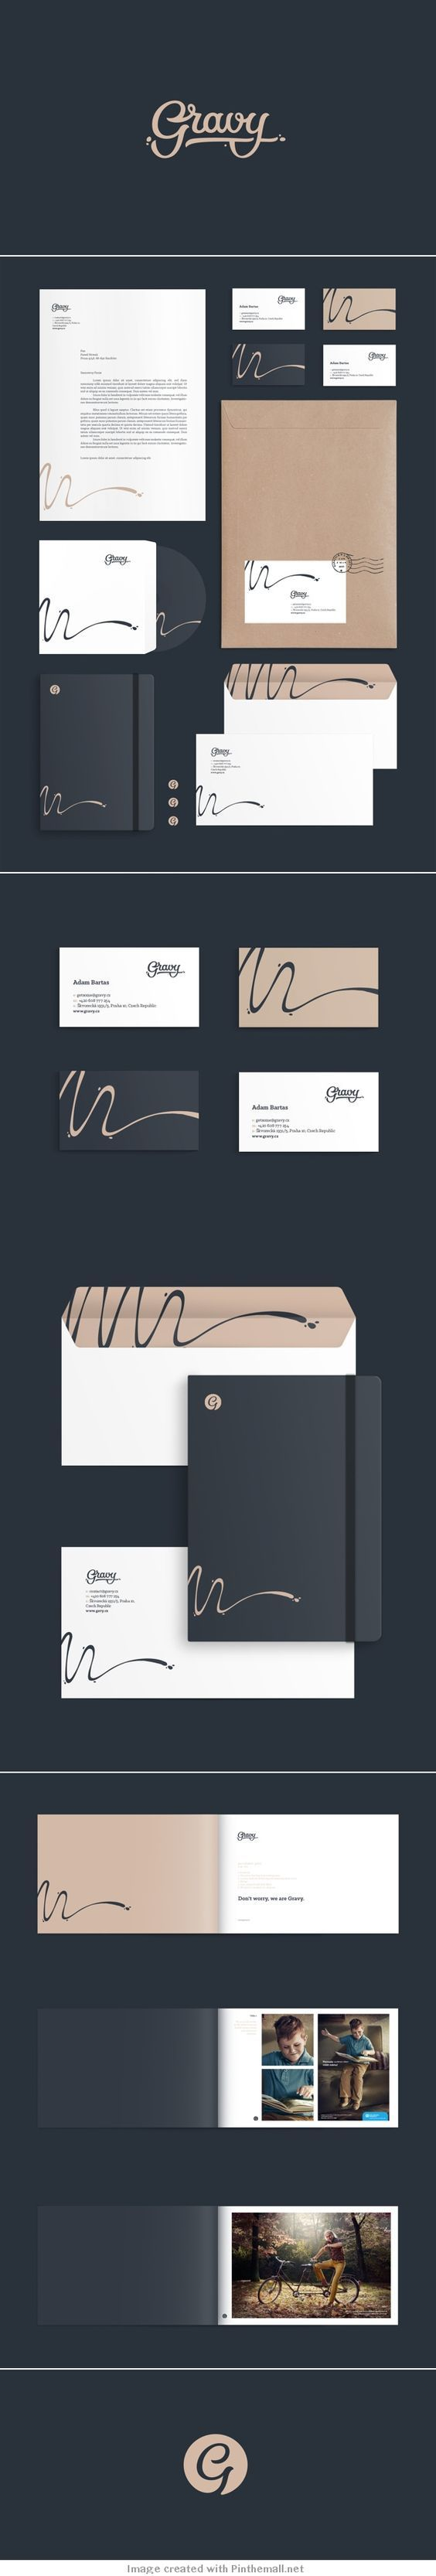 I REALLY like this. It is fun and cohesive. I like that the curvy line can stand alone, and is a distinct part of the brand.: